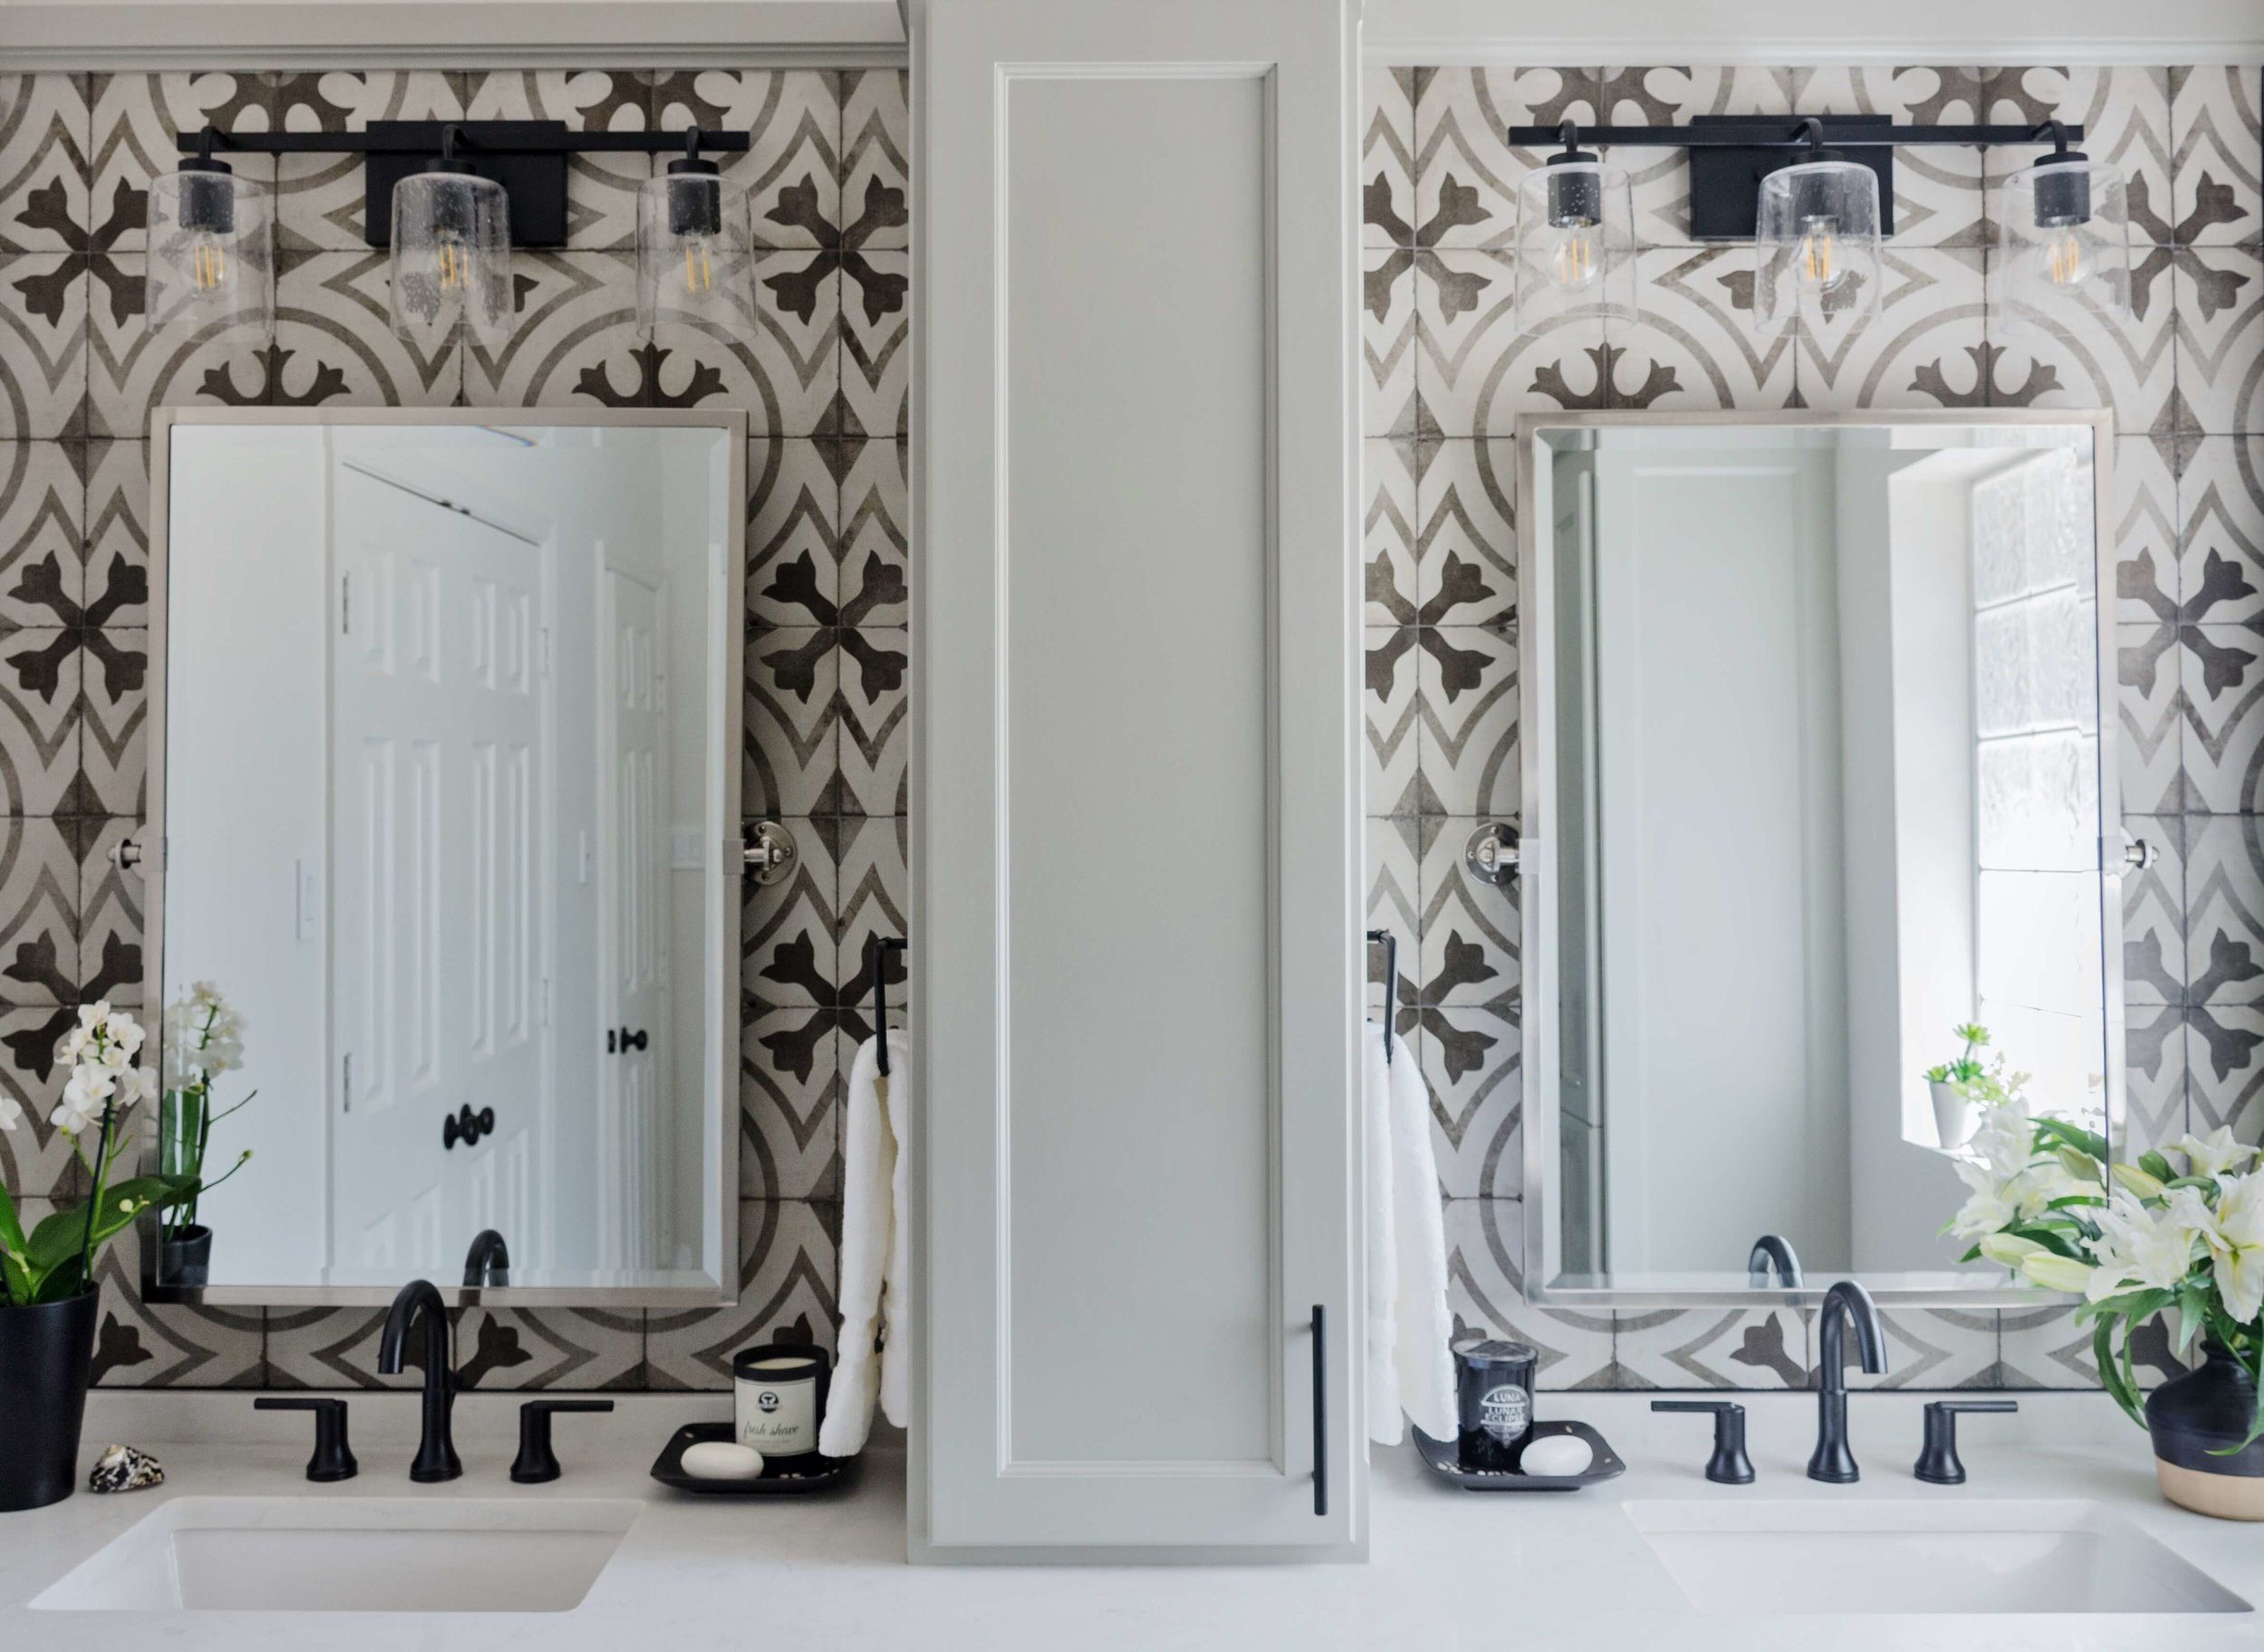 Bathroom remodel with cement look tile and black faucets | Carla Aston, Designer | Charles Behrend, Photographer